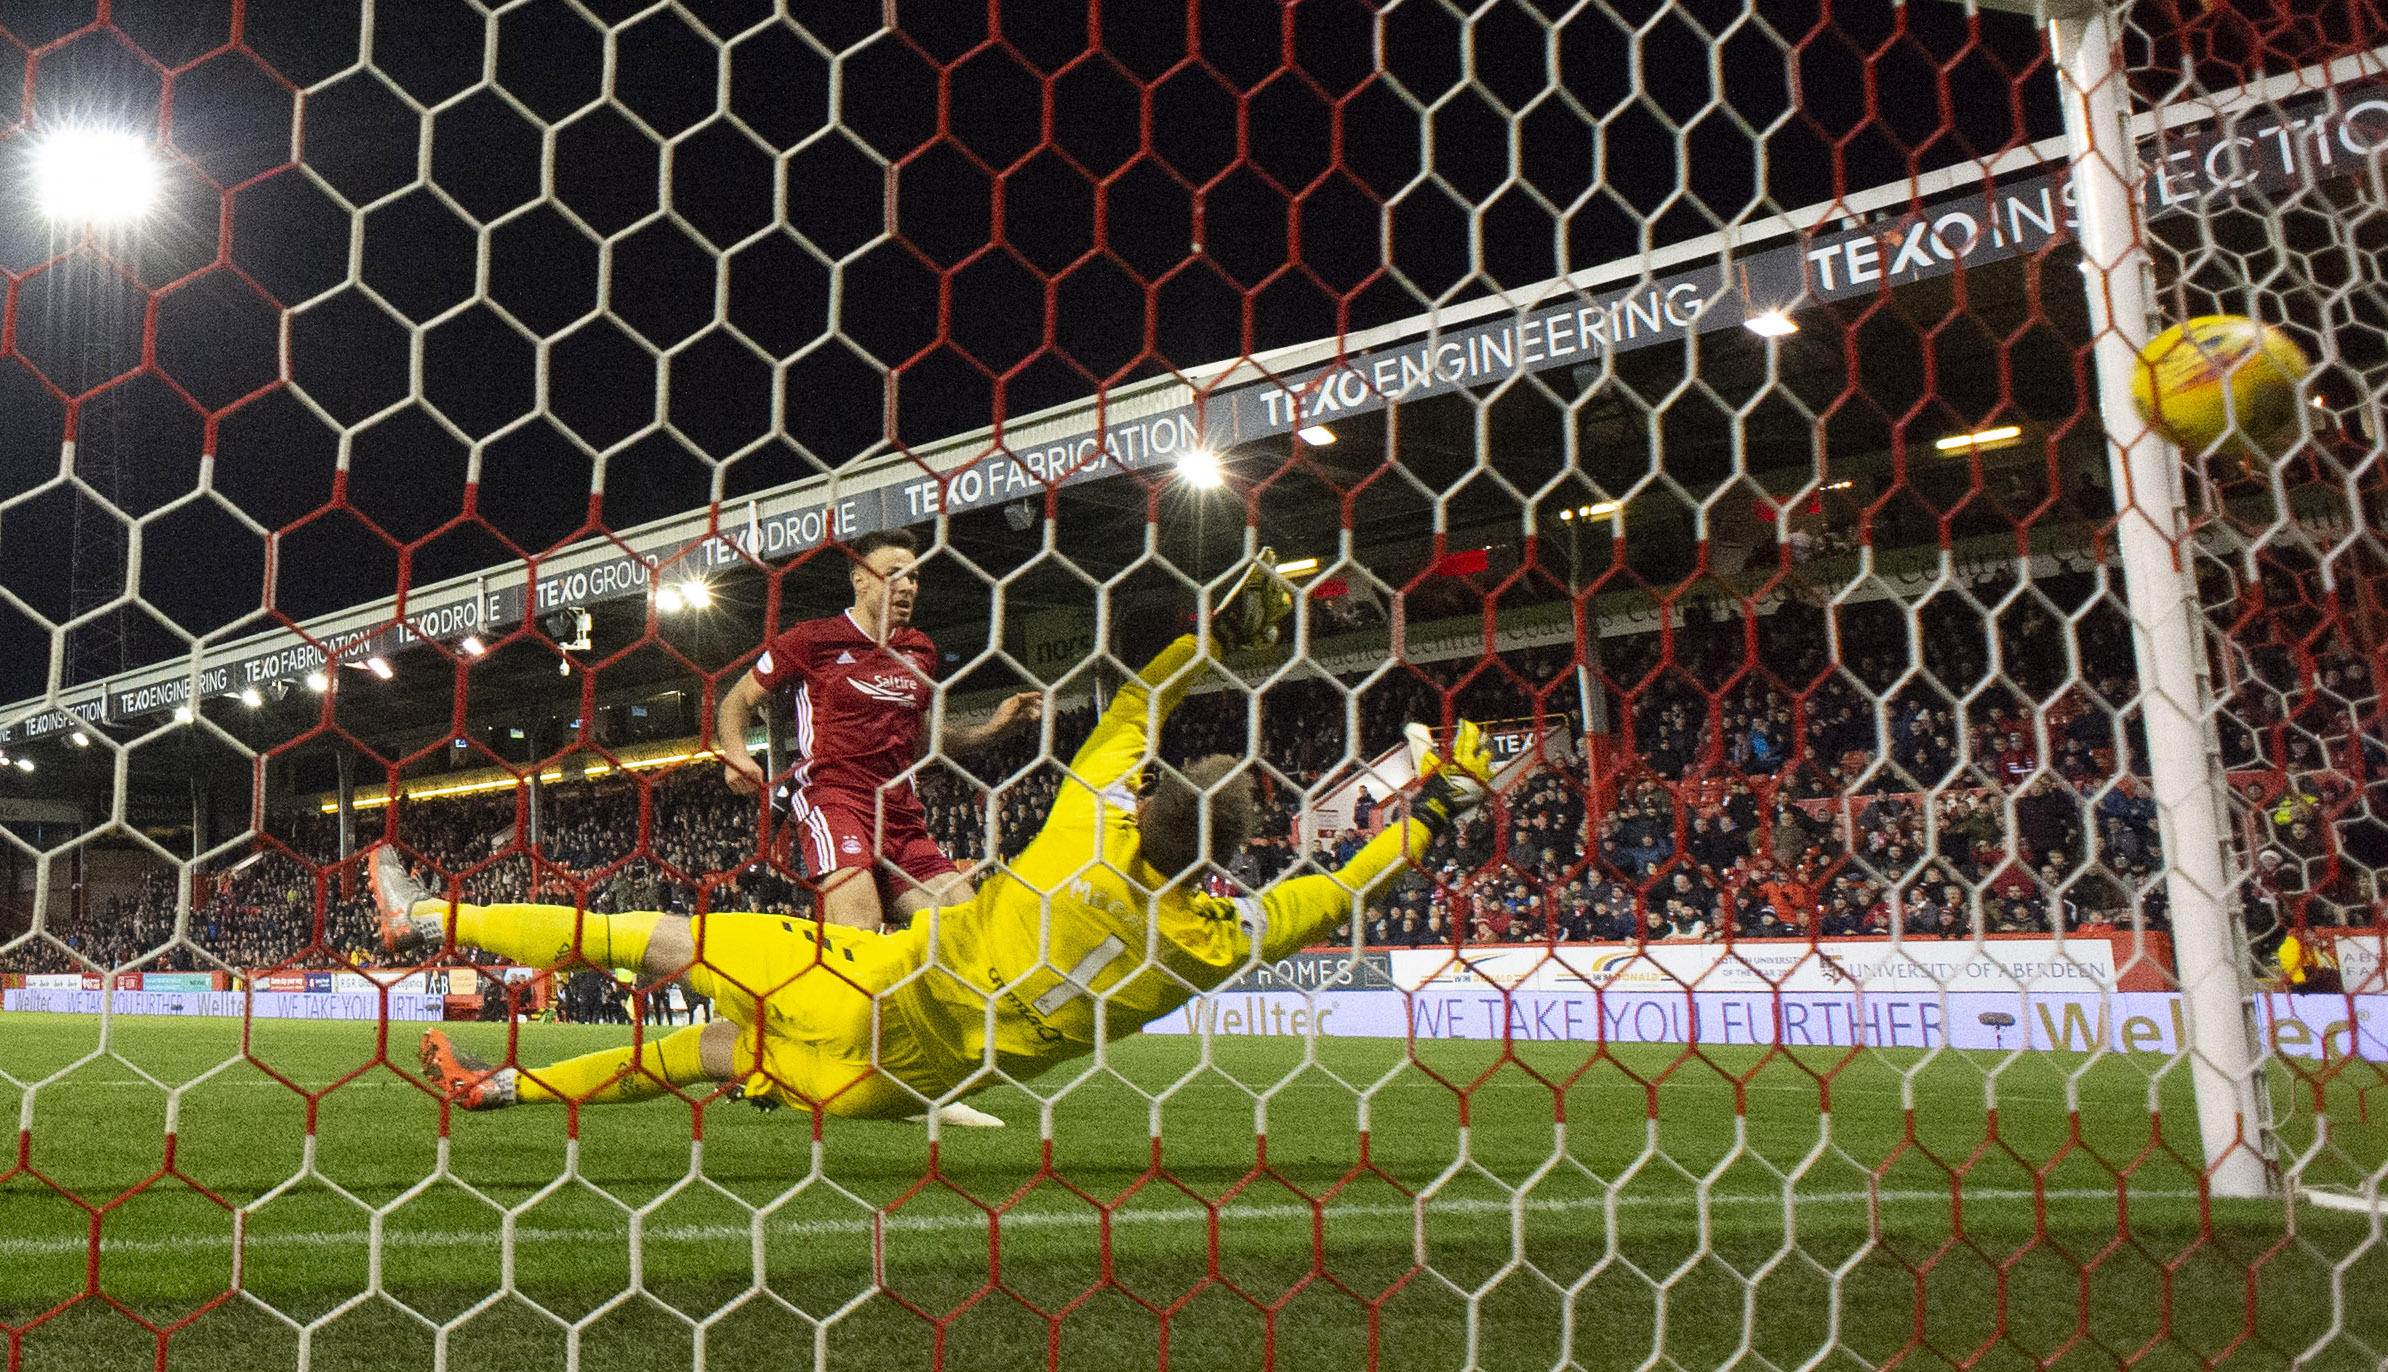 Aberdeen's Andy Considine makes it 2-2 against Rangers.